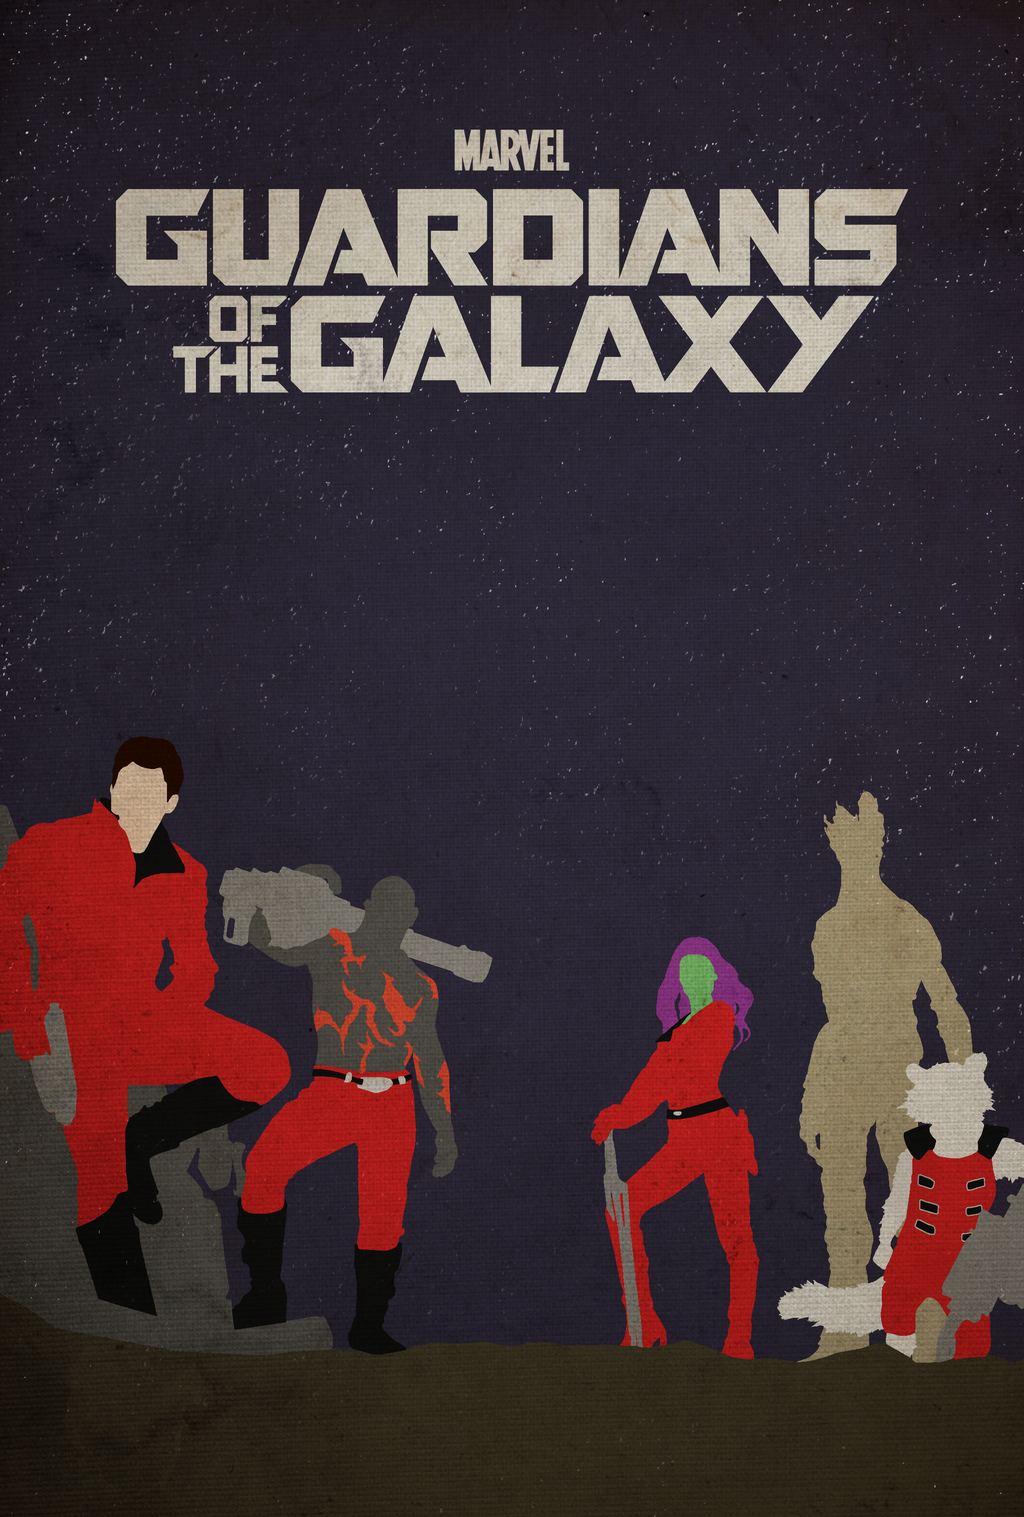 Guardians of the Galaxy - Poster by disgorgeapocalypse